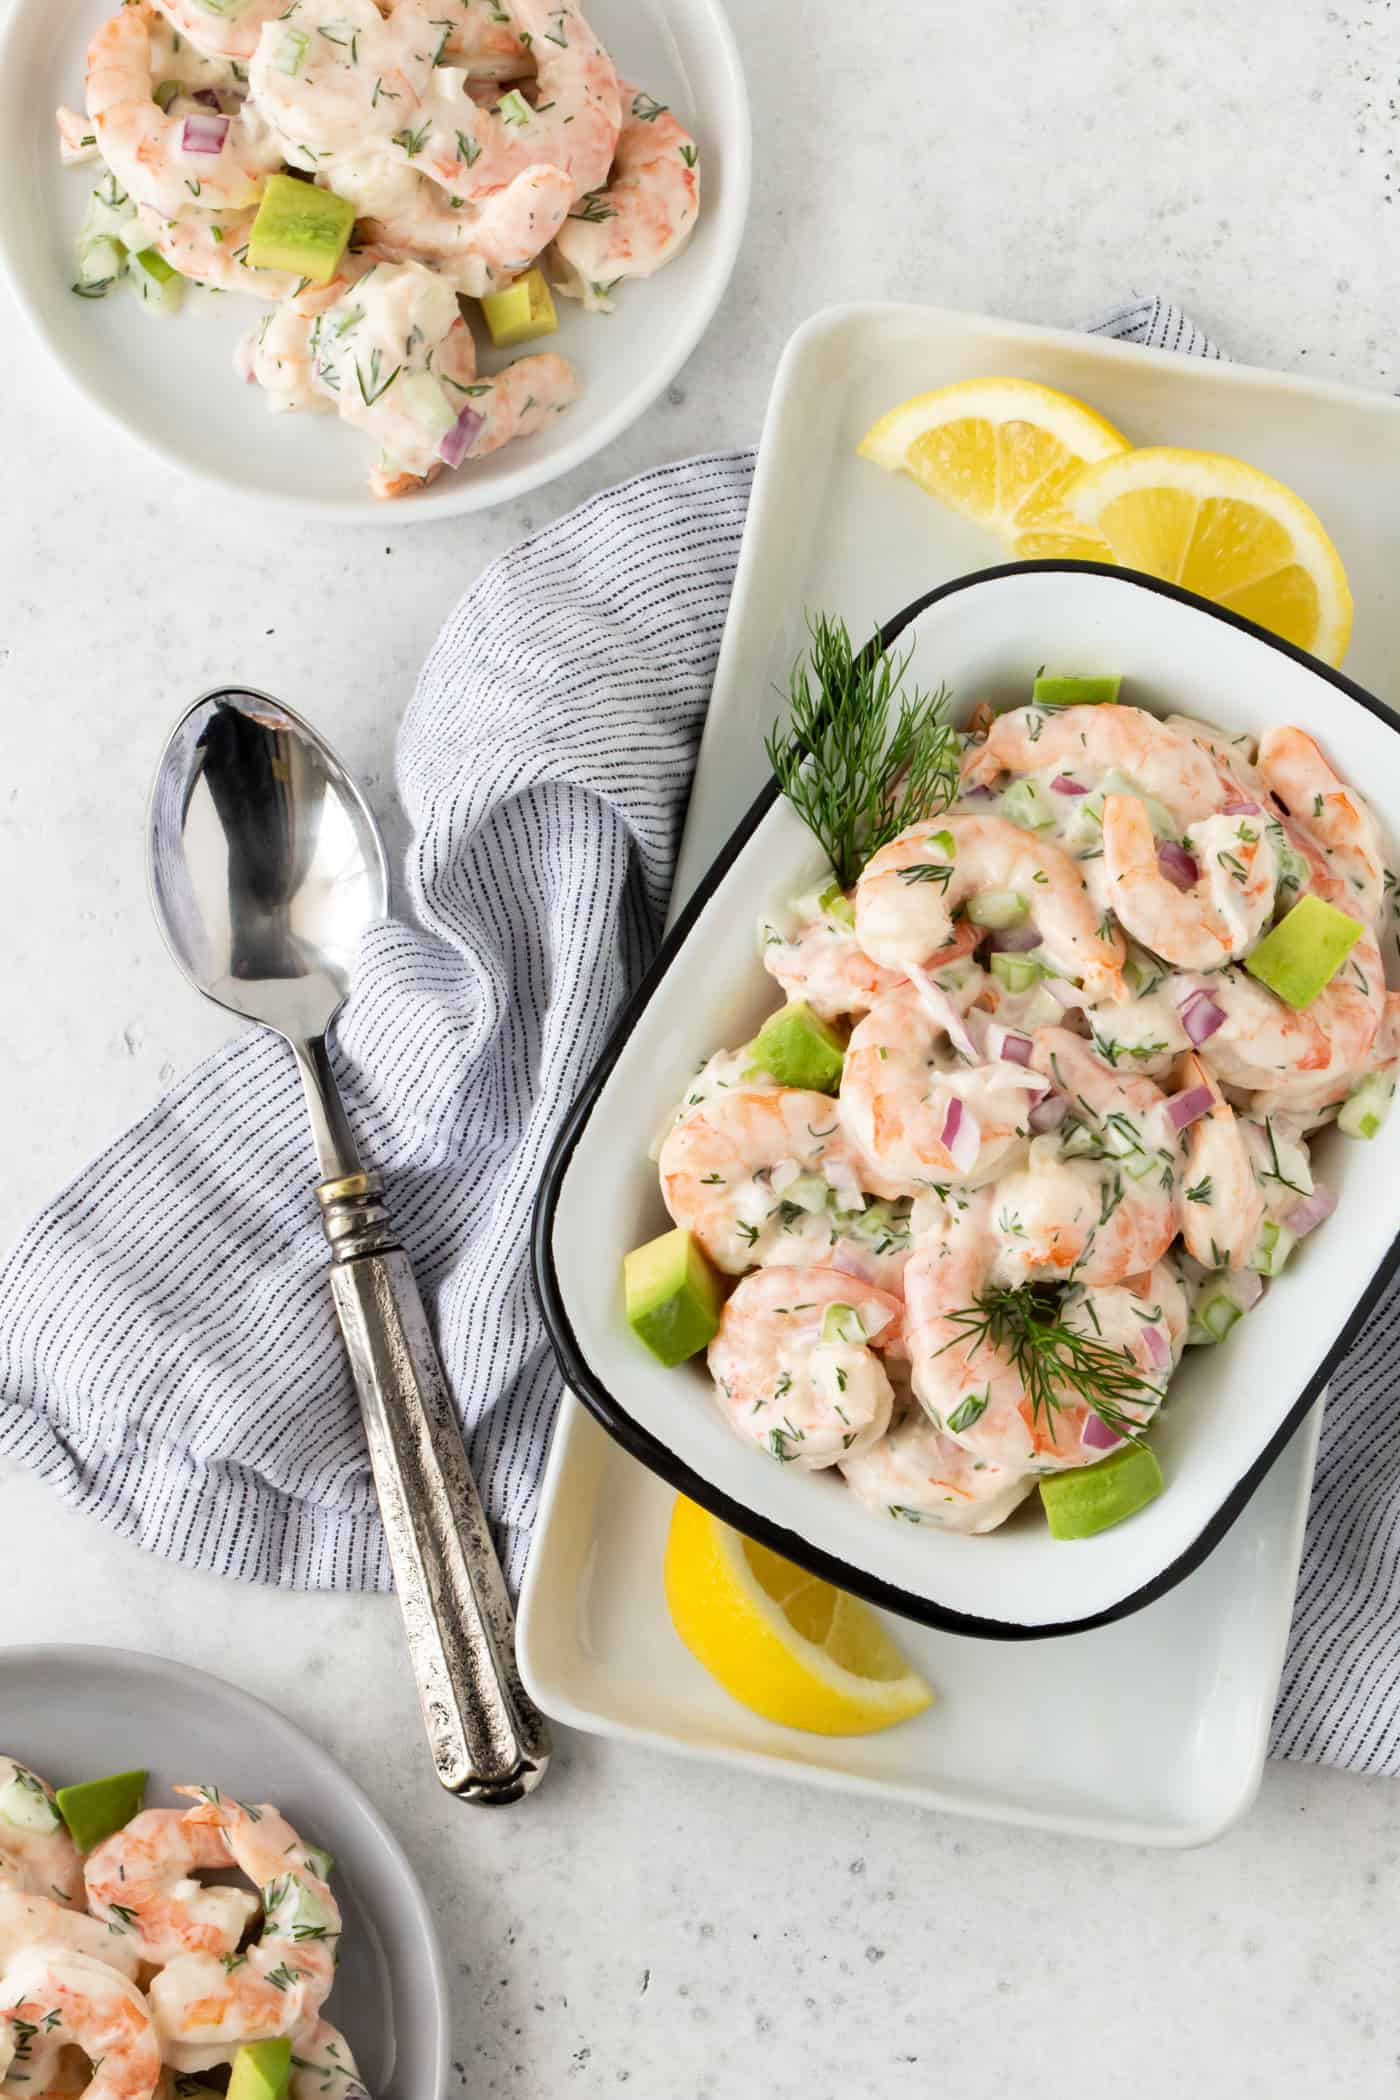 Shrimp Salad with Avocado in a white bowl with fresh dill and lemon wedges on a white surface.